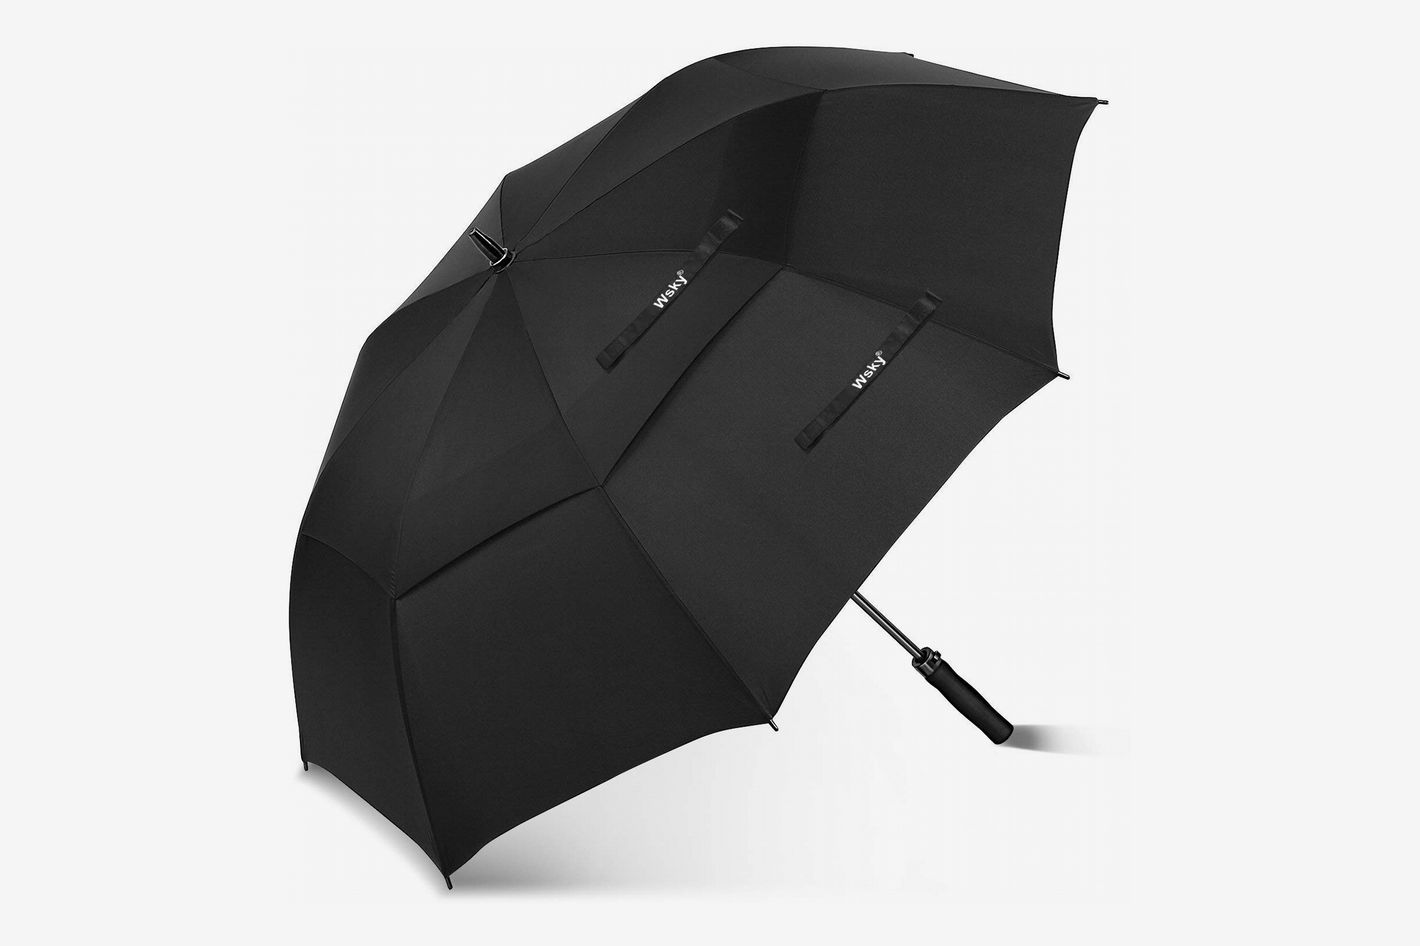 Wsky Golf Umbrella Windproof with 68 Inch Large Oversize